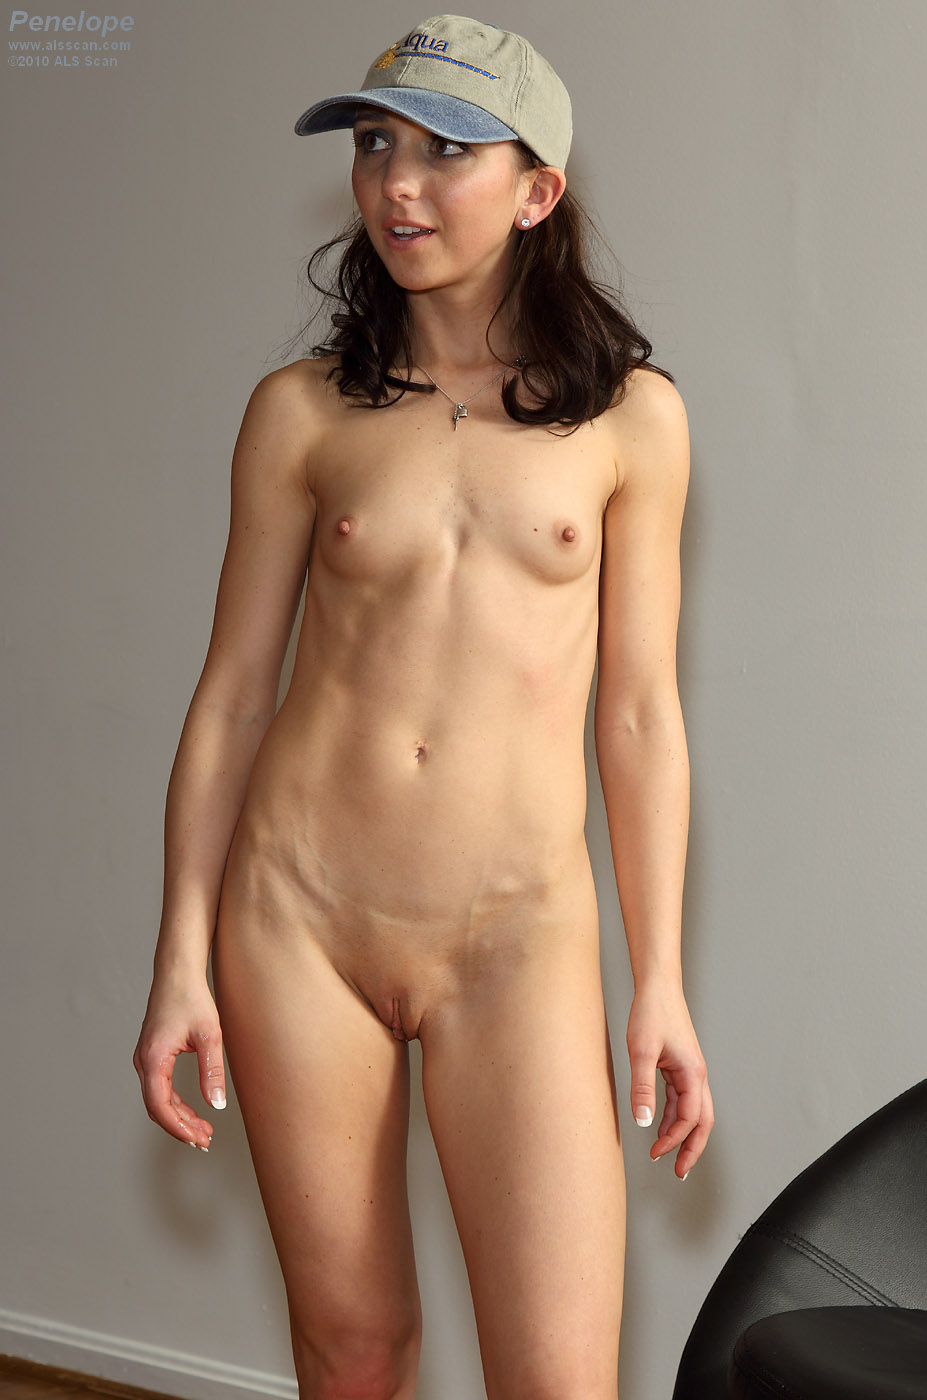 Can Full frontal girls naked